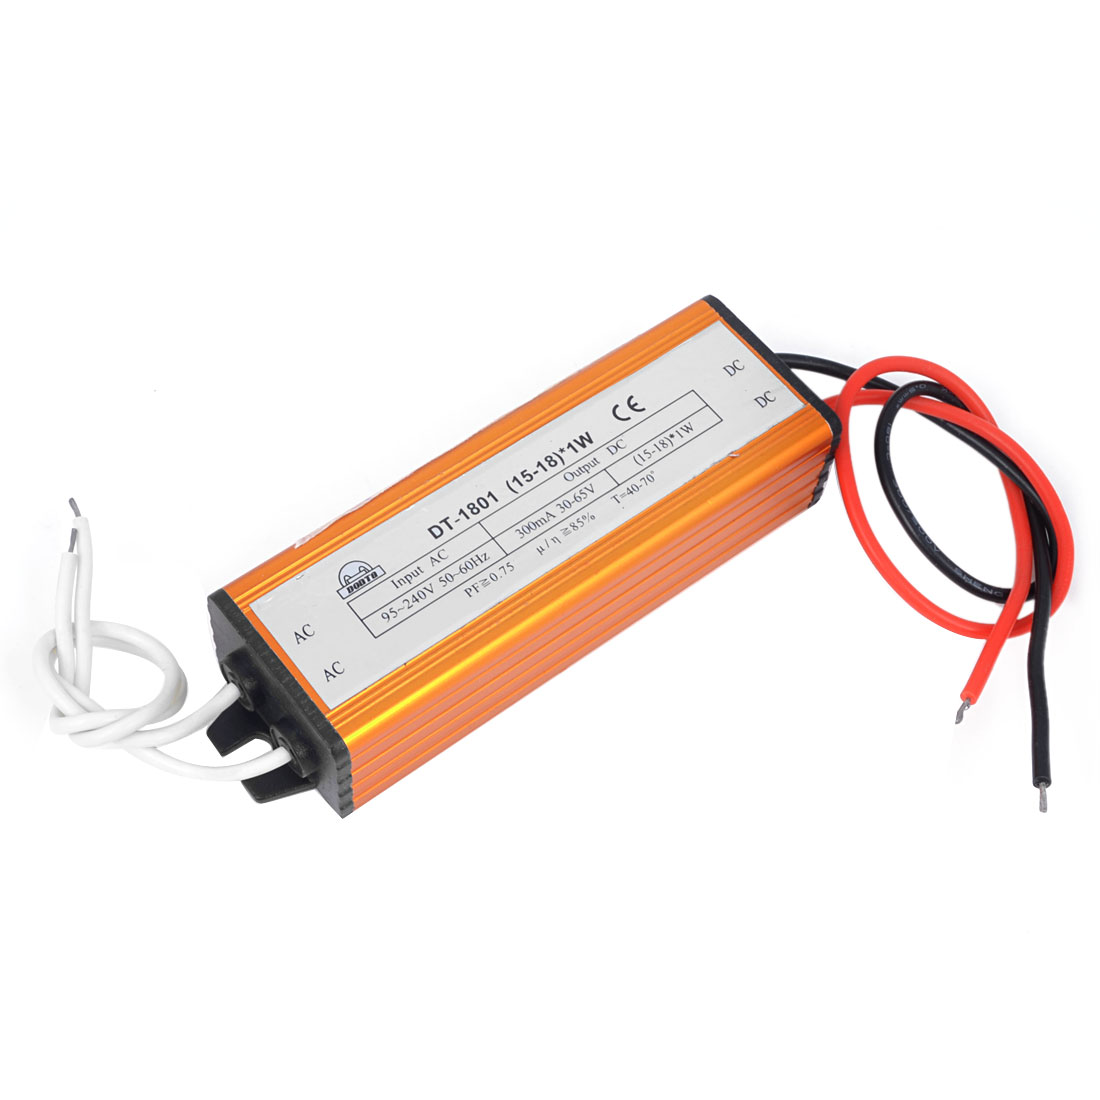 DC 30-65V (15-18)x1W Waterproof LED Driver Circuit Transformer Power Supply